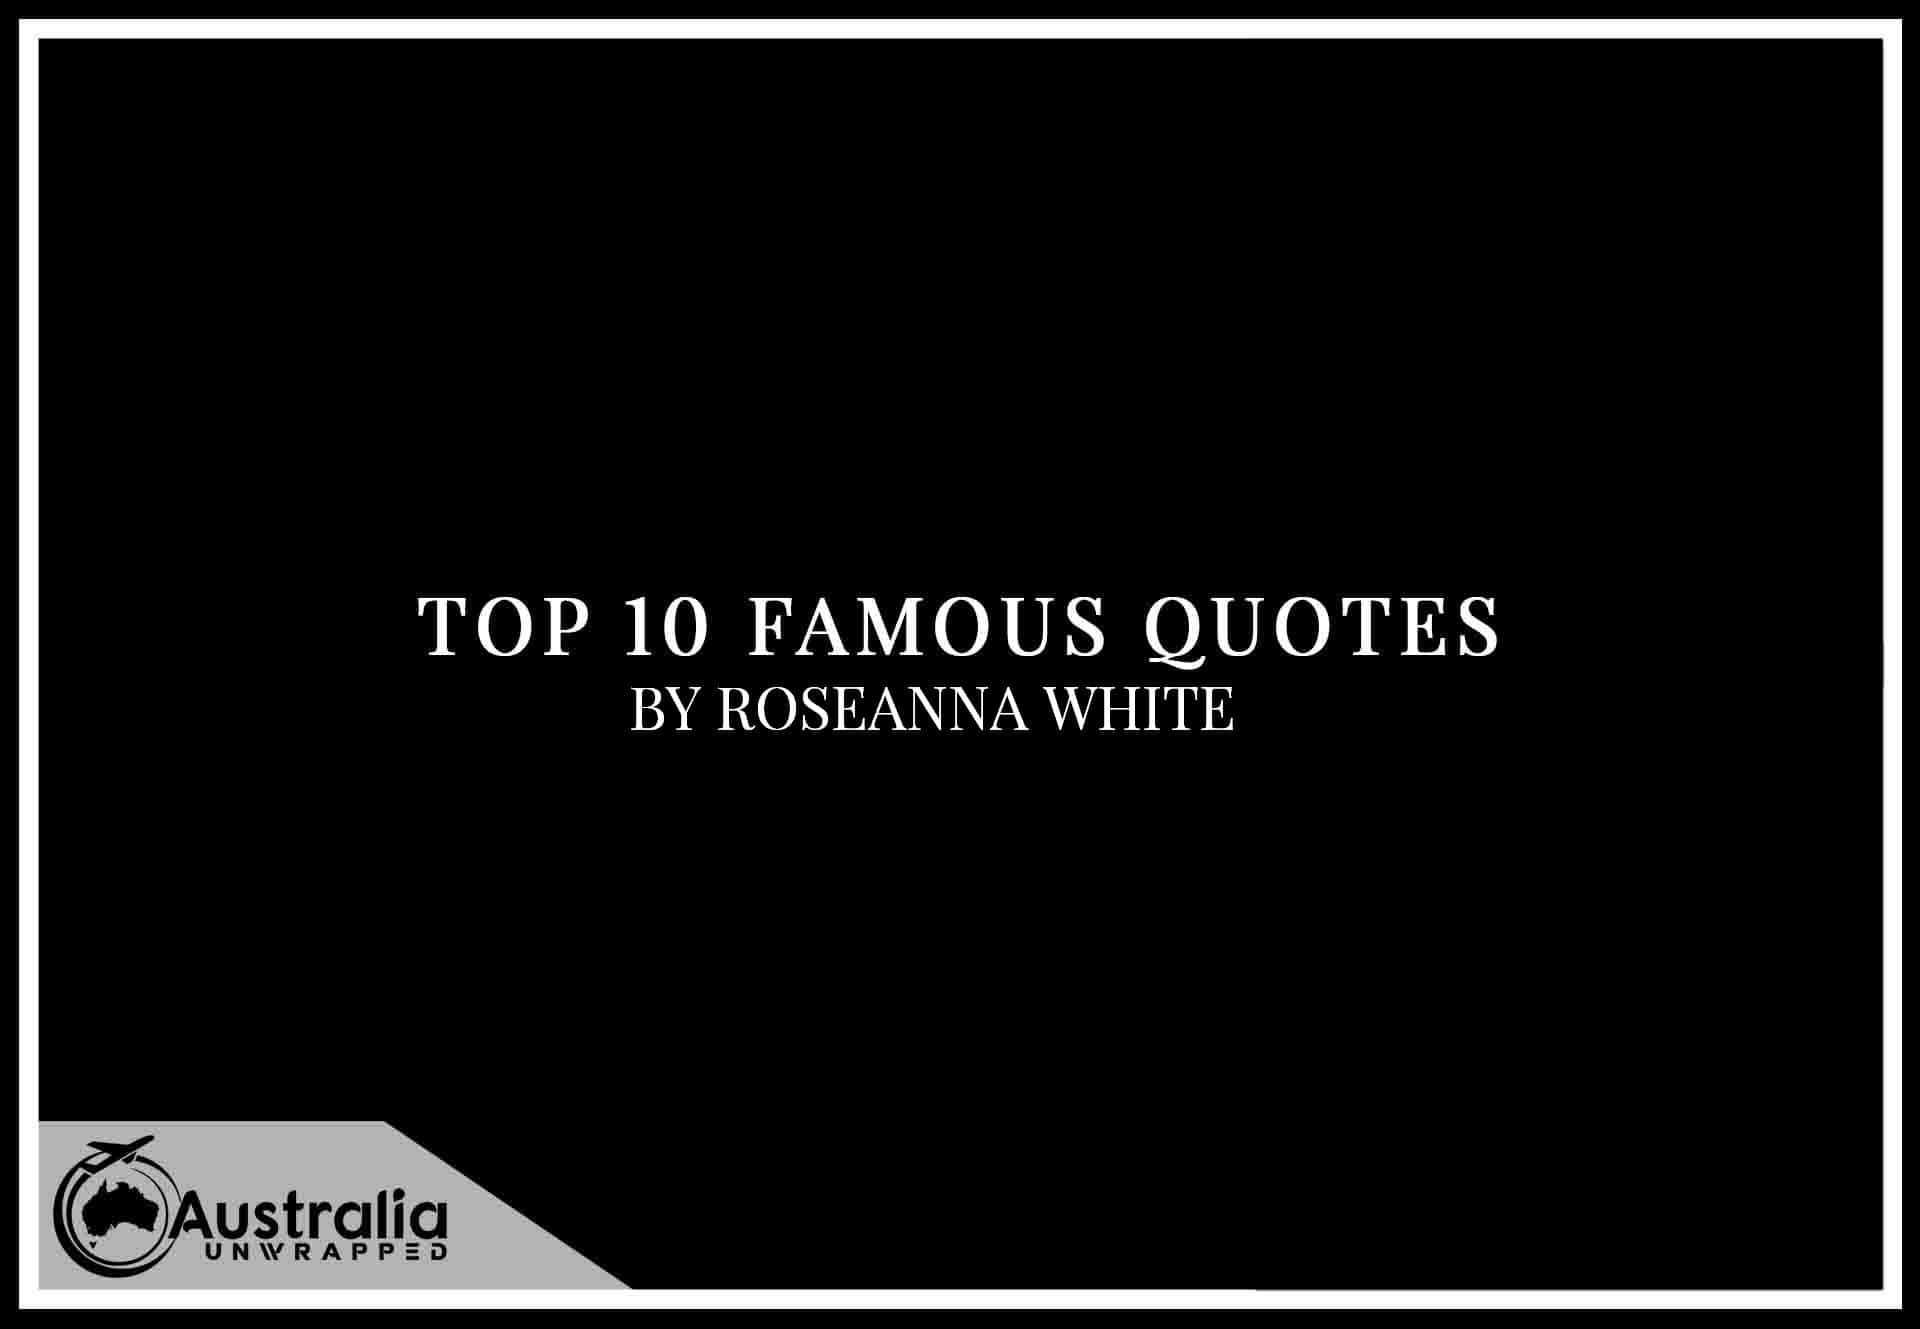 Top 10 Famous Quotes by Author Roseanna White